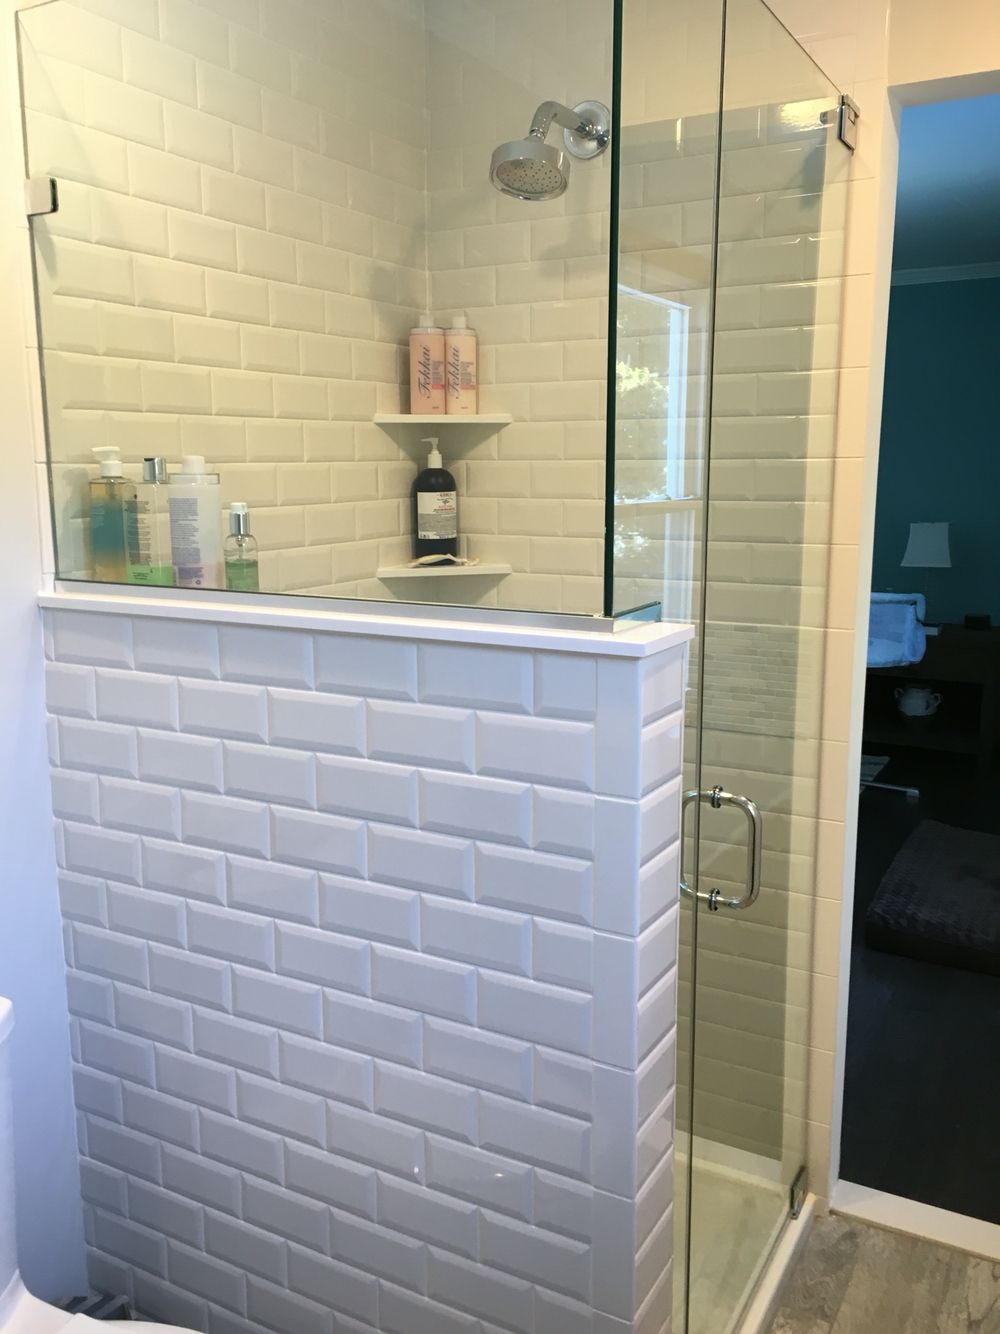 Our master bathroom shower with beveled subway tiles | Steam Showers ...